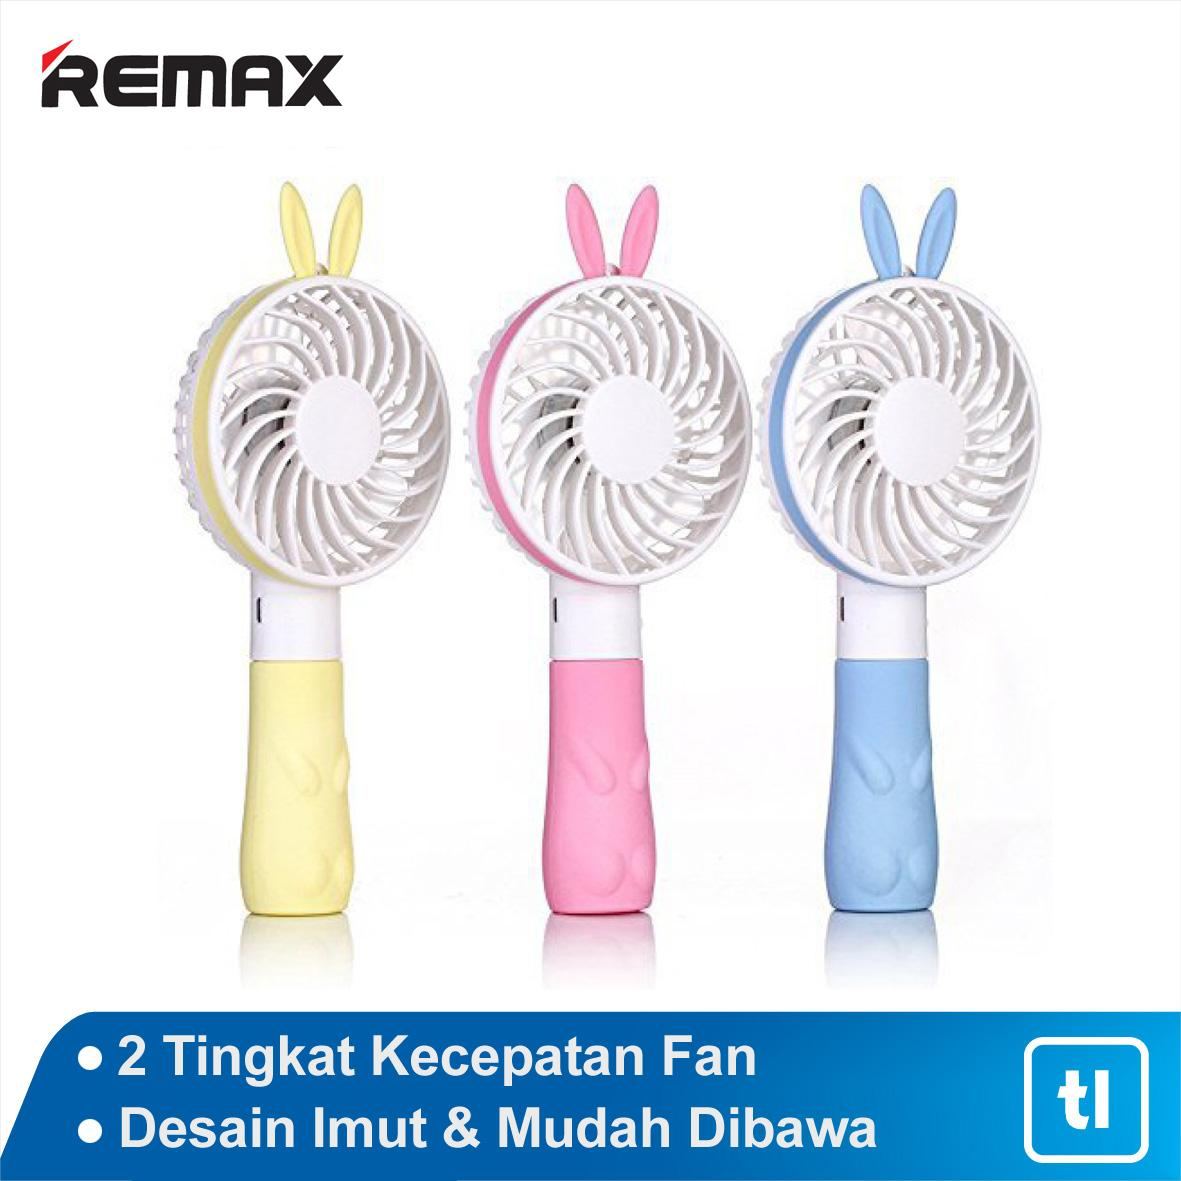 Remax Bunny Mini Fan F7 / Kipas Angin Mini / Kipas Angin Portable /  Kipas Angin Portable Murah / Kipas Angin Portable USB Fan